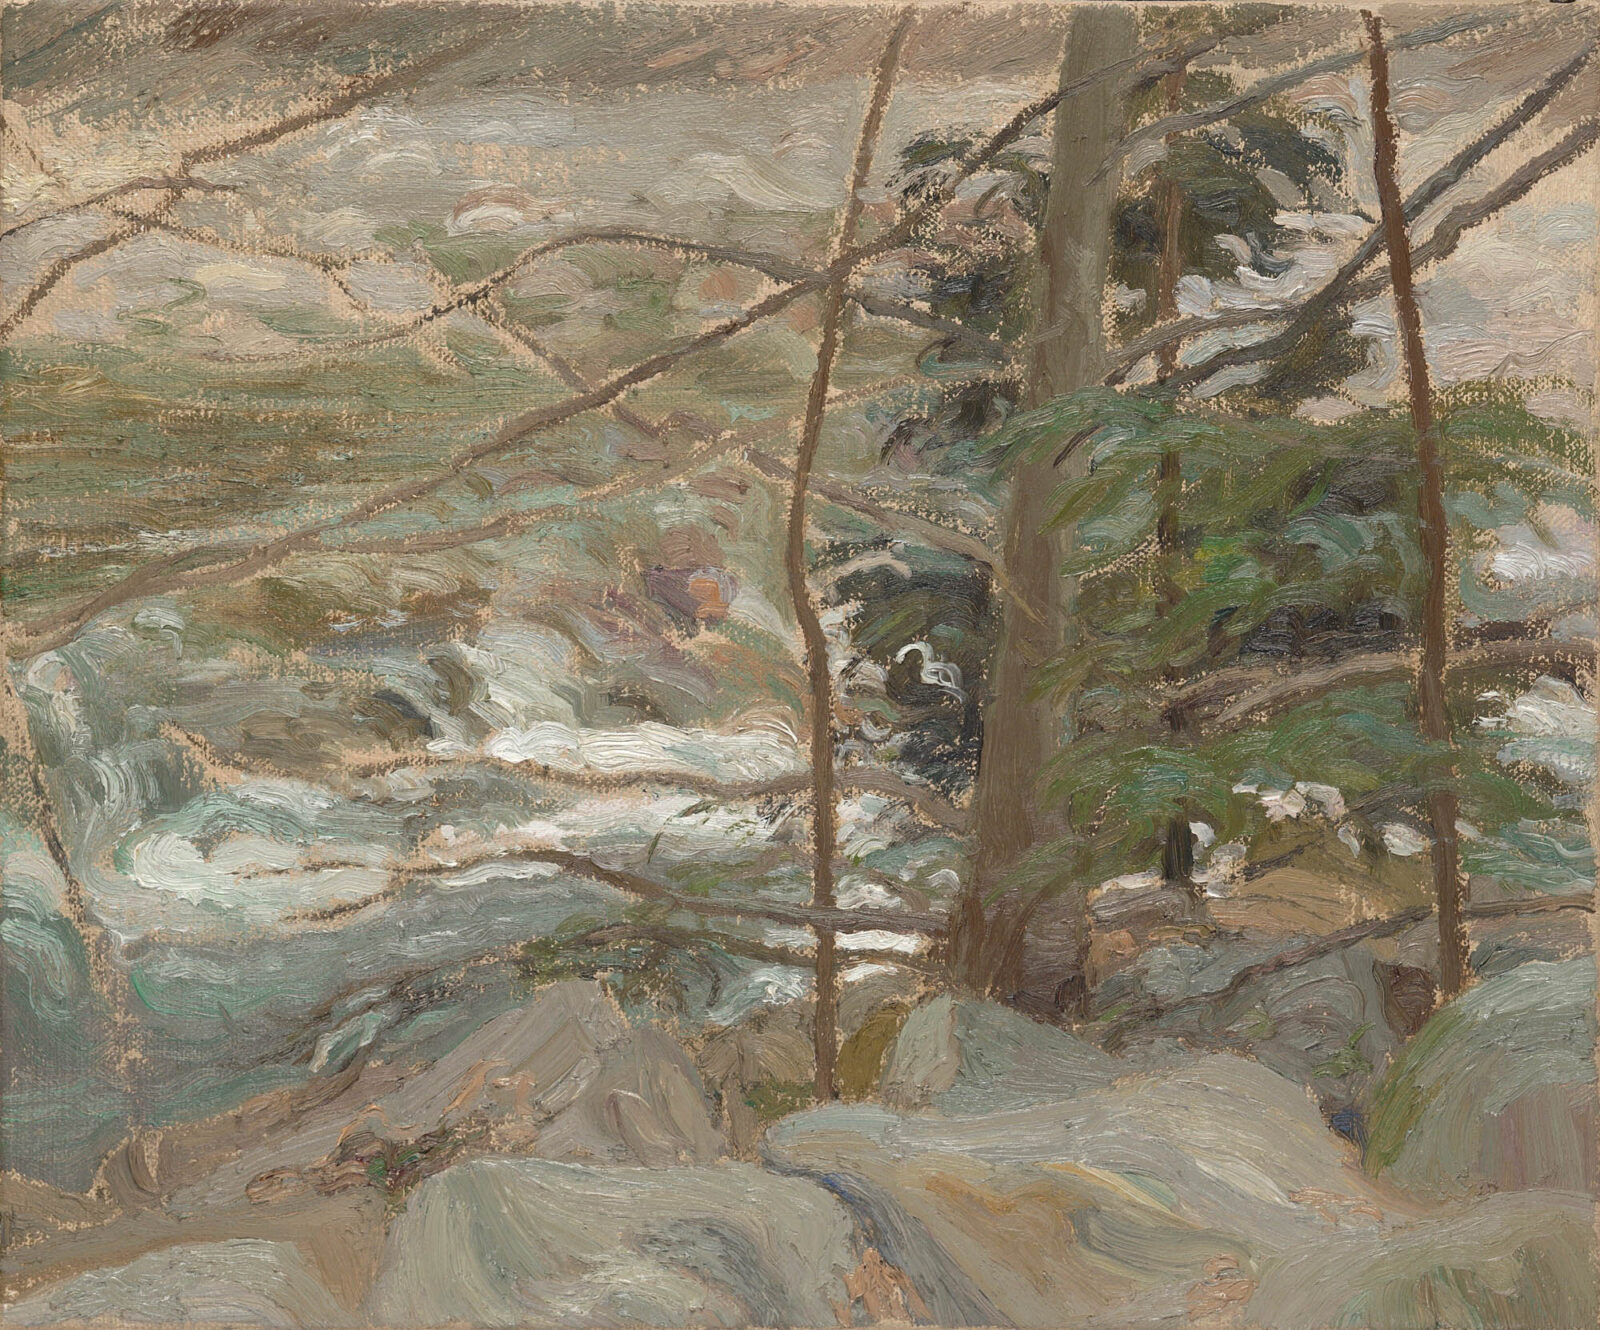 Liza Visagie - Evergreen against the River. Oil on Linen 10 x 12 inches